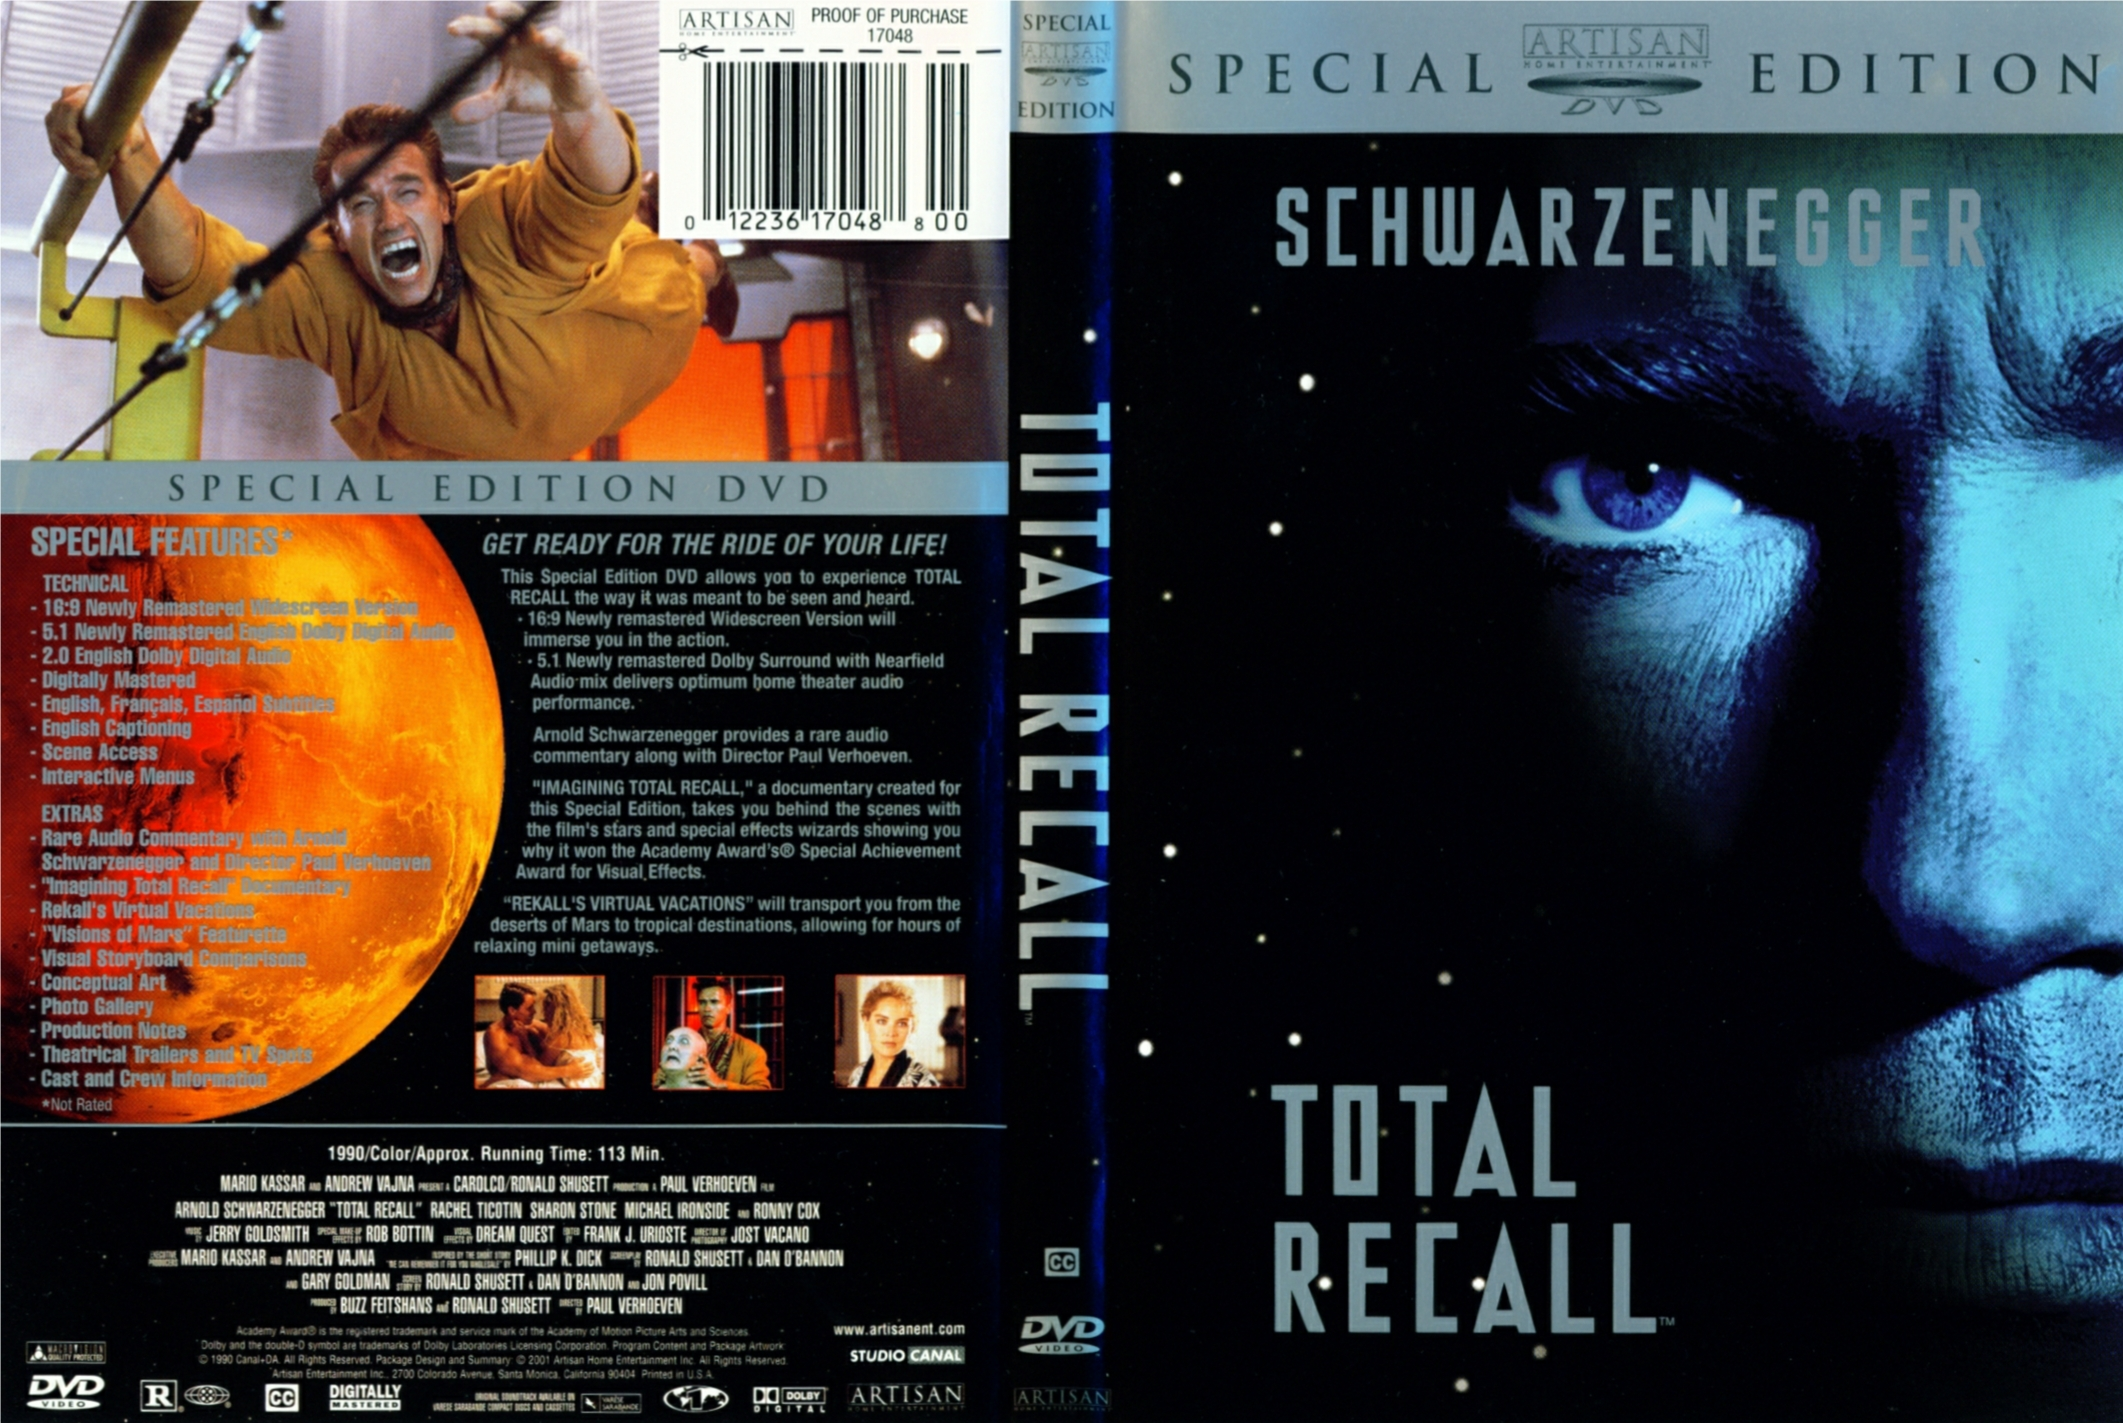 Total Recall 1990 Dvd Cover | www.imgkid.com - 1832.3KB